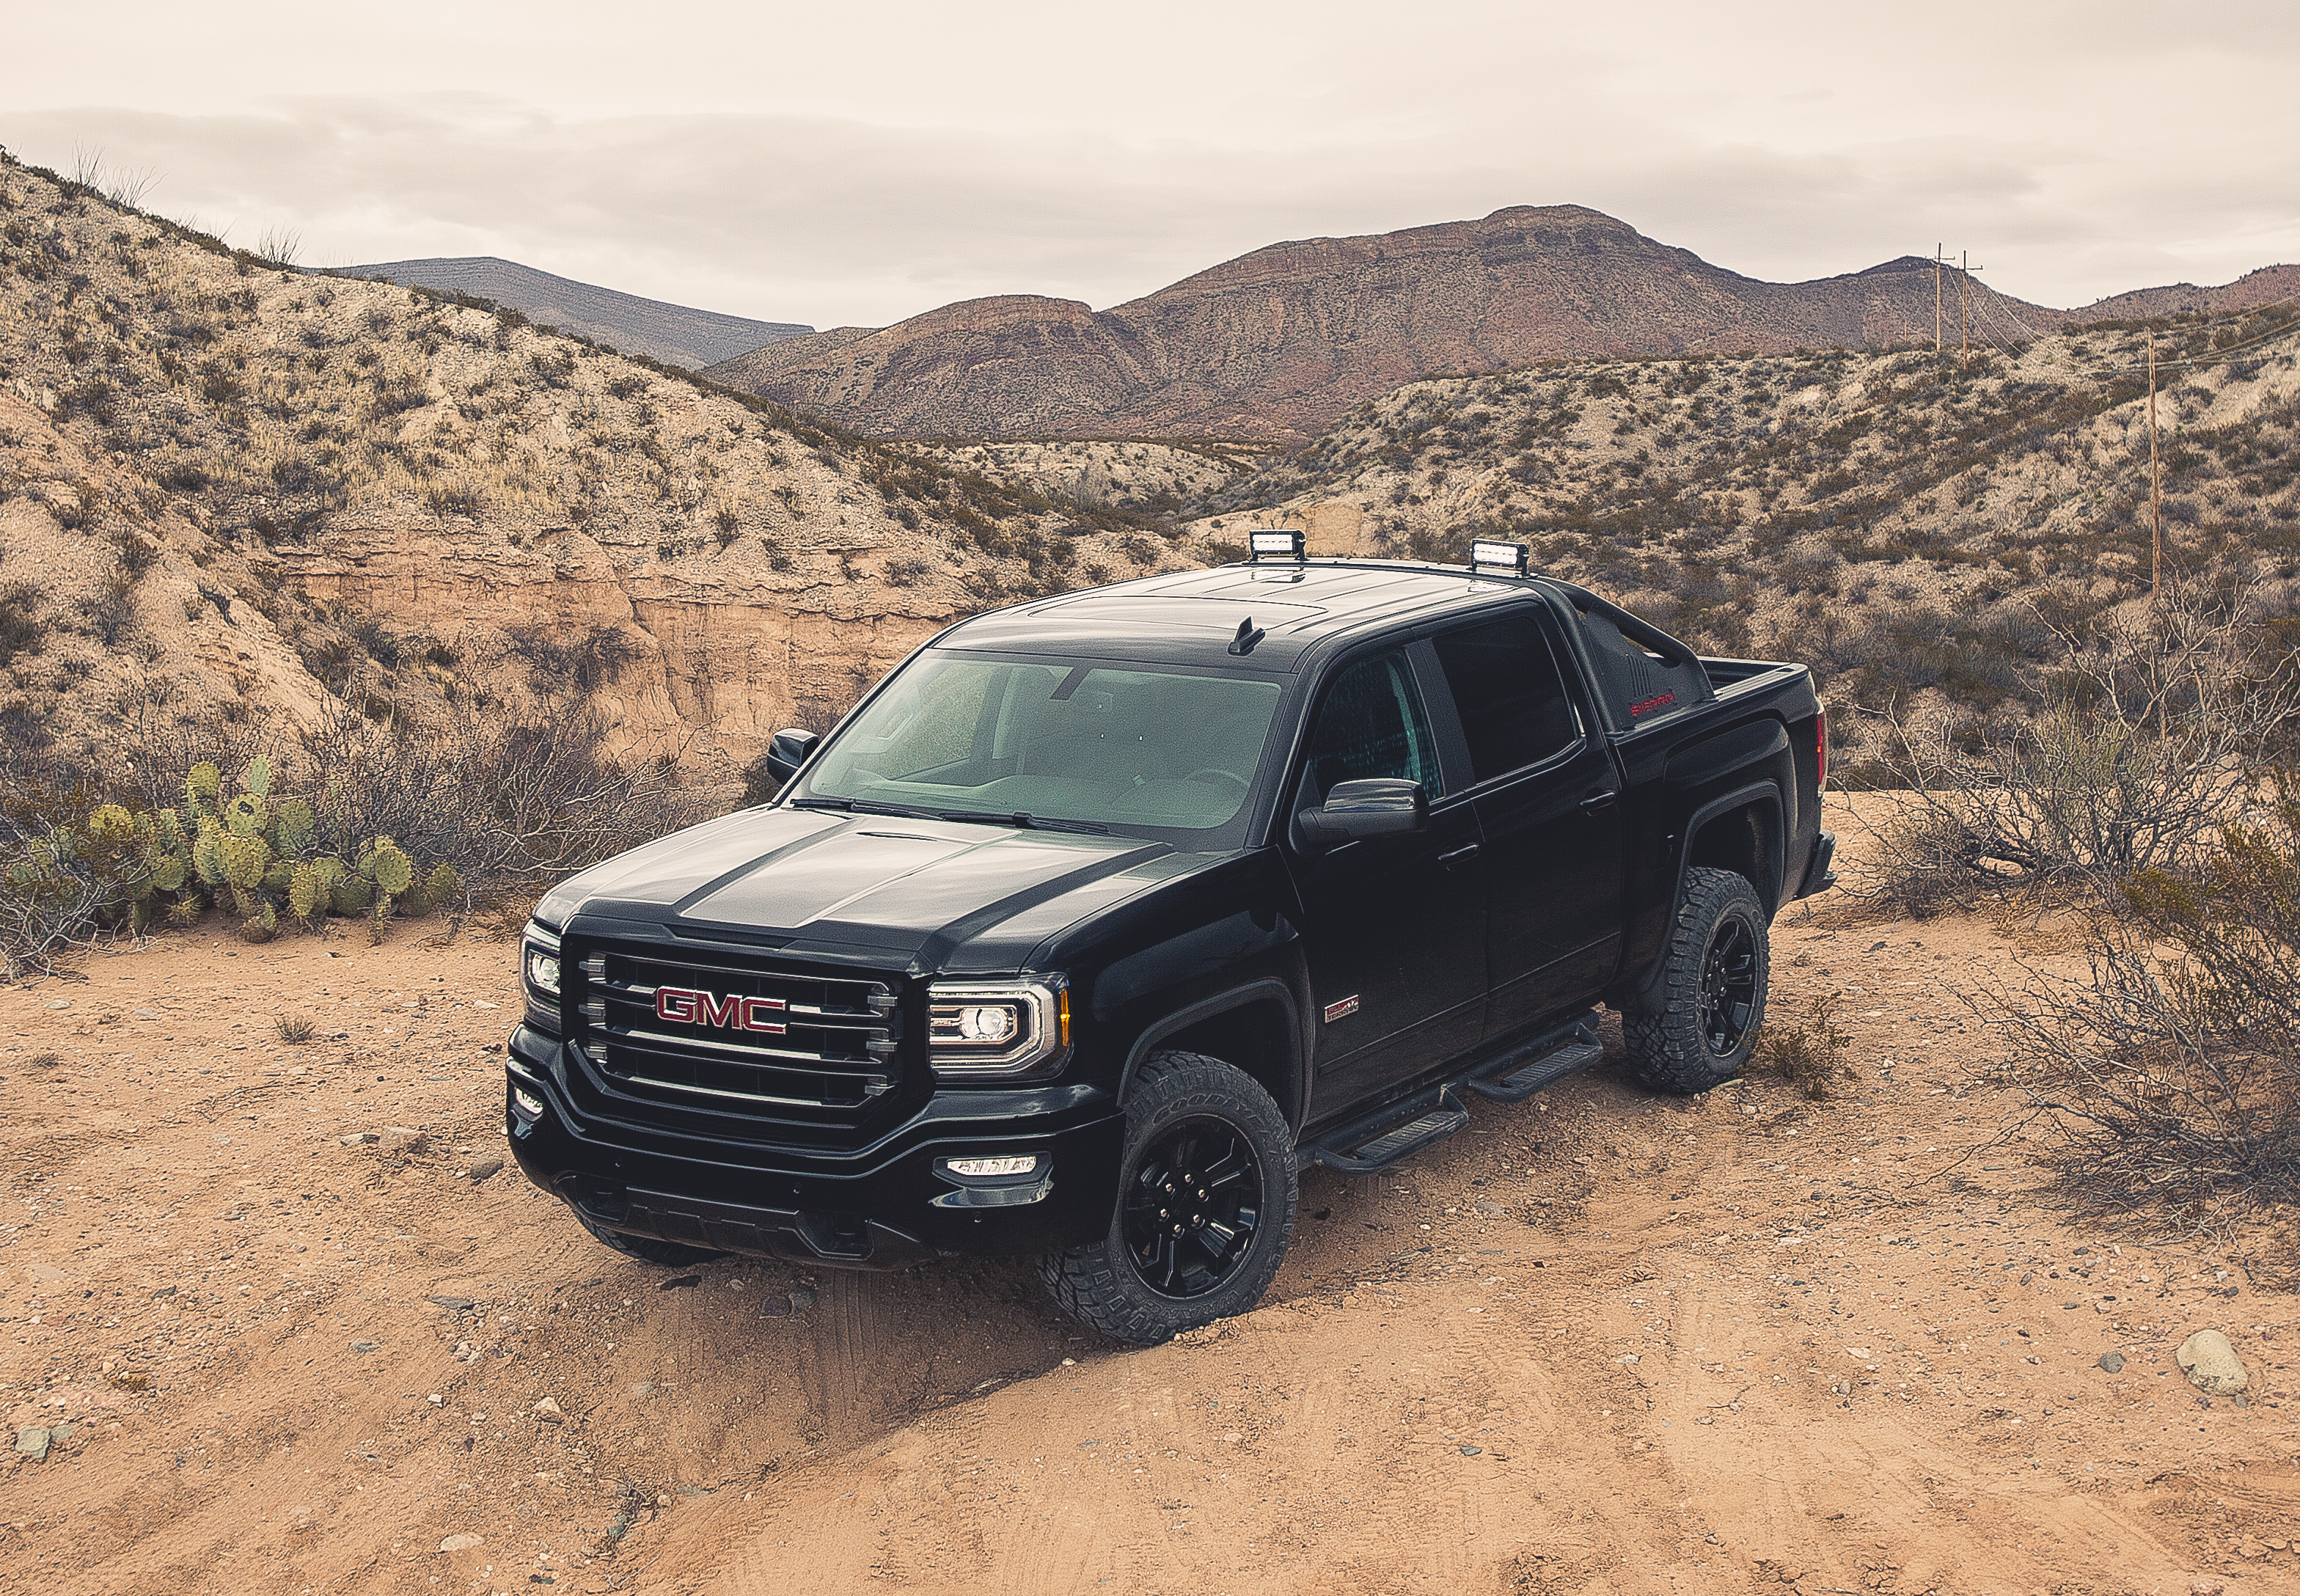 2016 GMC Sierra All Terrain X debuts at the 2016 Houston Auto Show on Wednesday, Jan. 27.